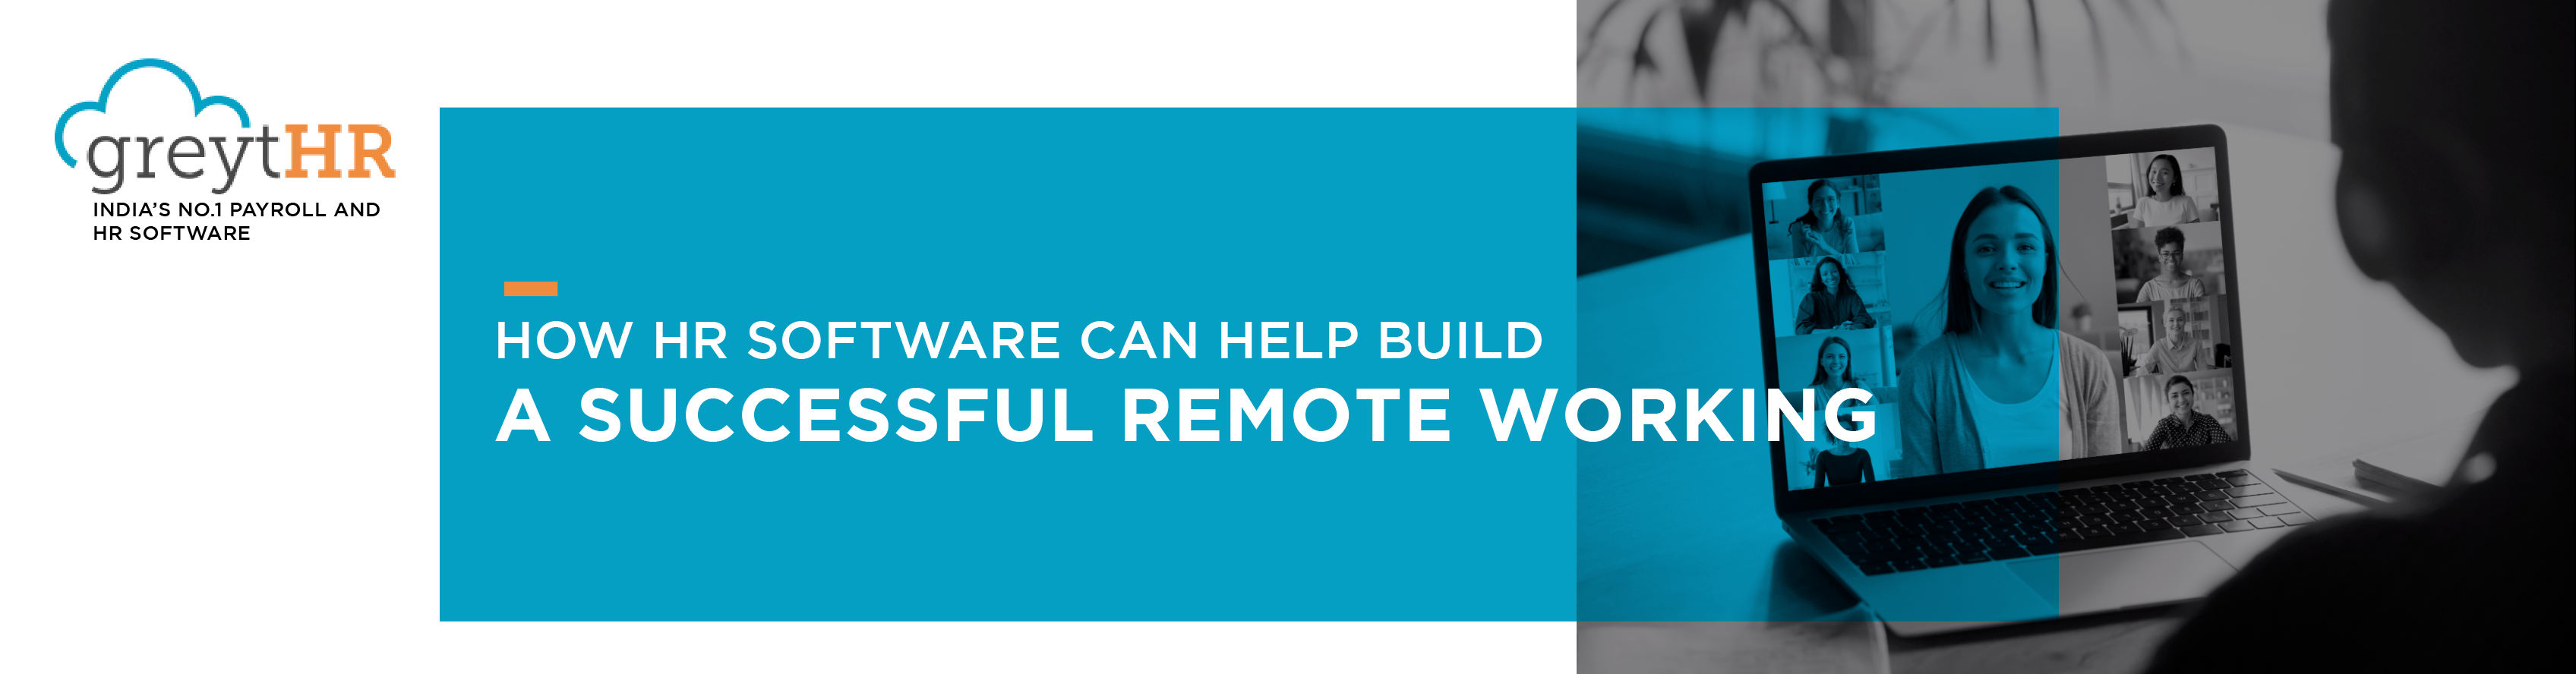 How HR Software can help build a successful remote working